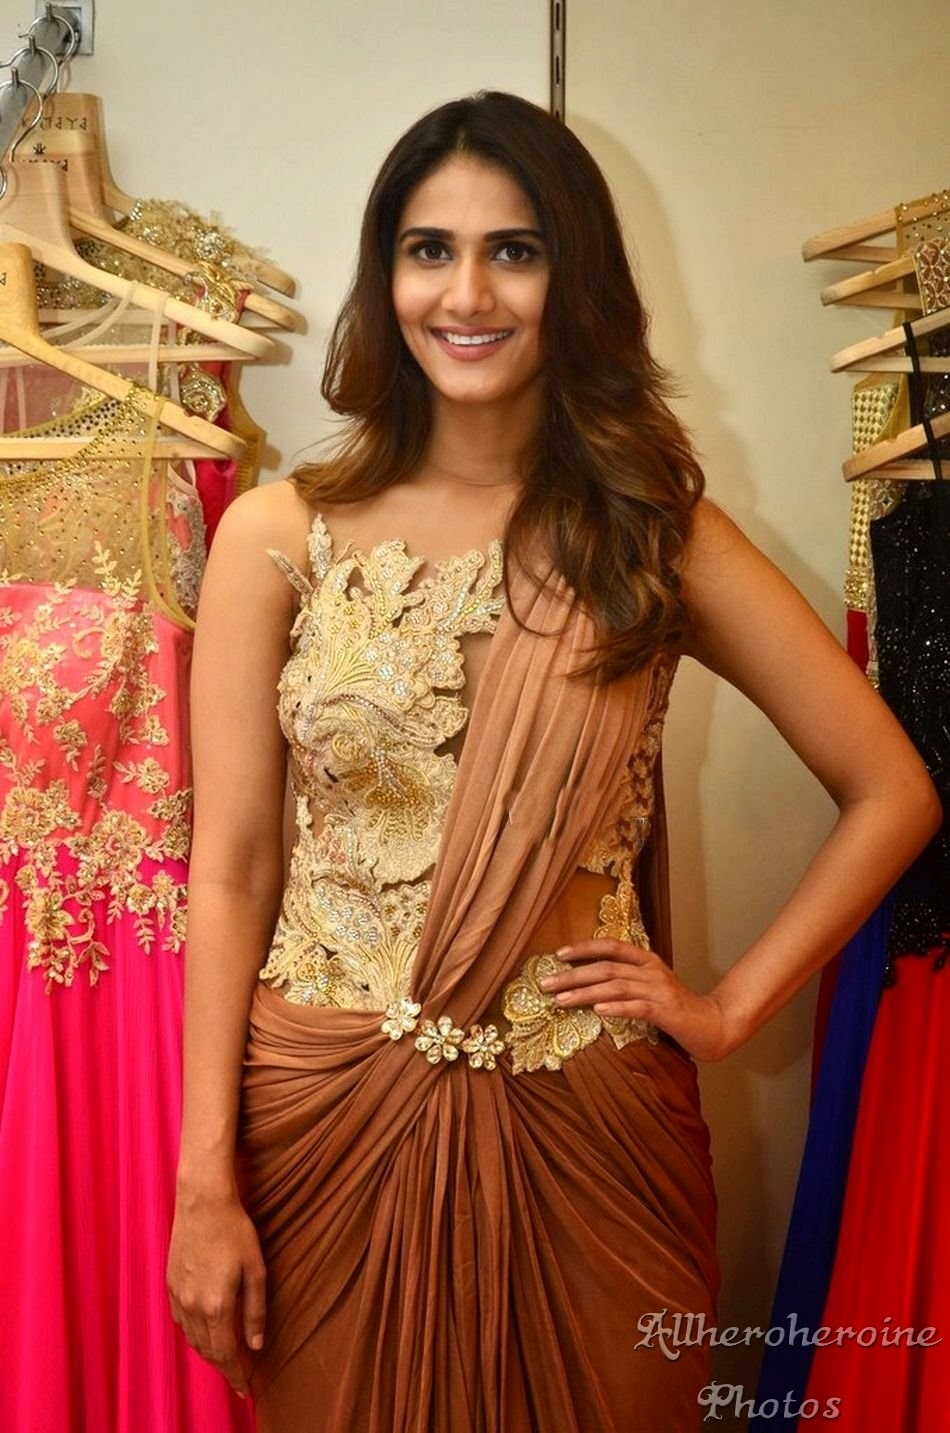 Vaani Kapoor Hot Photos, Vaani Kapoor updates,Vaani Kapoor Latest Hot Photo Shoot Stills, Vaani Kapoor Hot, Hot Vaani Kapoor,Vaani Kapoor gossips ,  Vaani Kapoor New Pics, Vaani Kapoor Cute Stills, Photos, Vaani Kapoor in Churidar, Vaani Kapoor in Langa Voni, Vaani Kapoor in Saree, Vaani Kapoor in Bikini , Vaani Kapoor Bikini Hot Pics, Vaani Kapoor Latest Hot Pics, Vaani Kapoor Hot Images